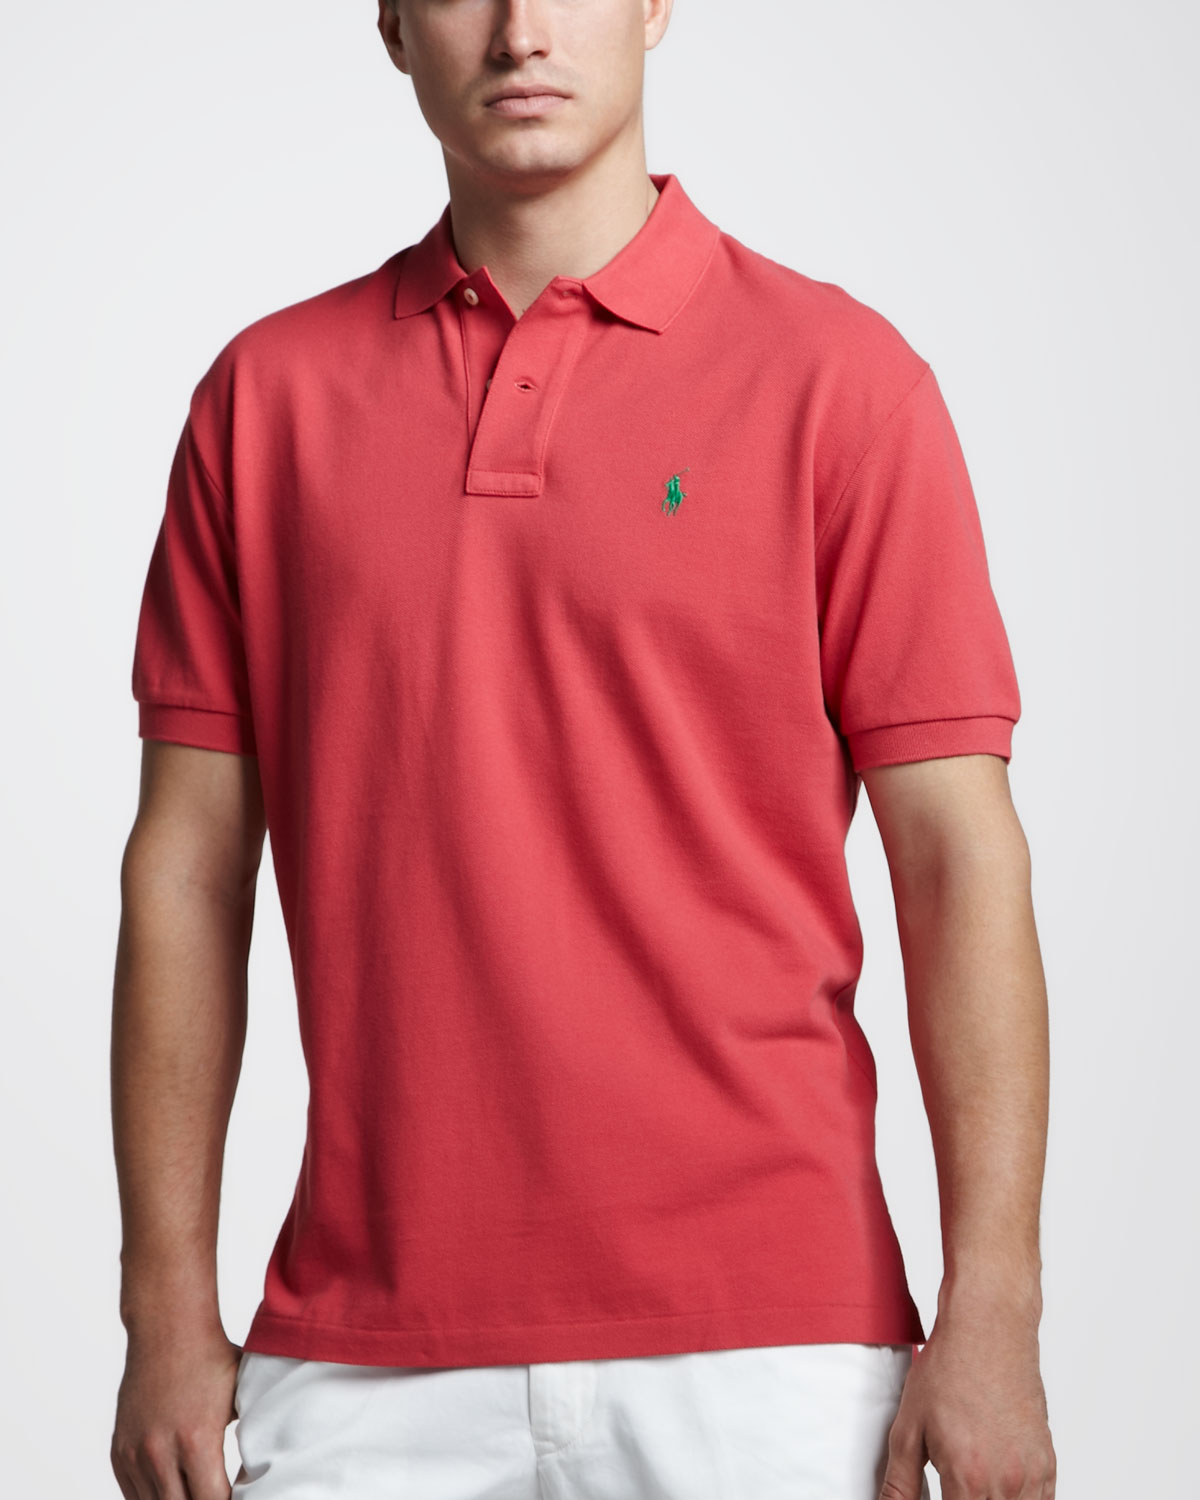 Lyst - Polo Ralph Lauren Customfit Polo in Red for Men 77254ff36af7